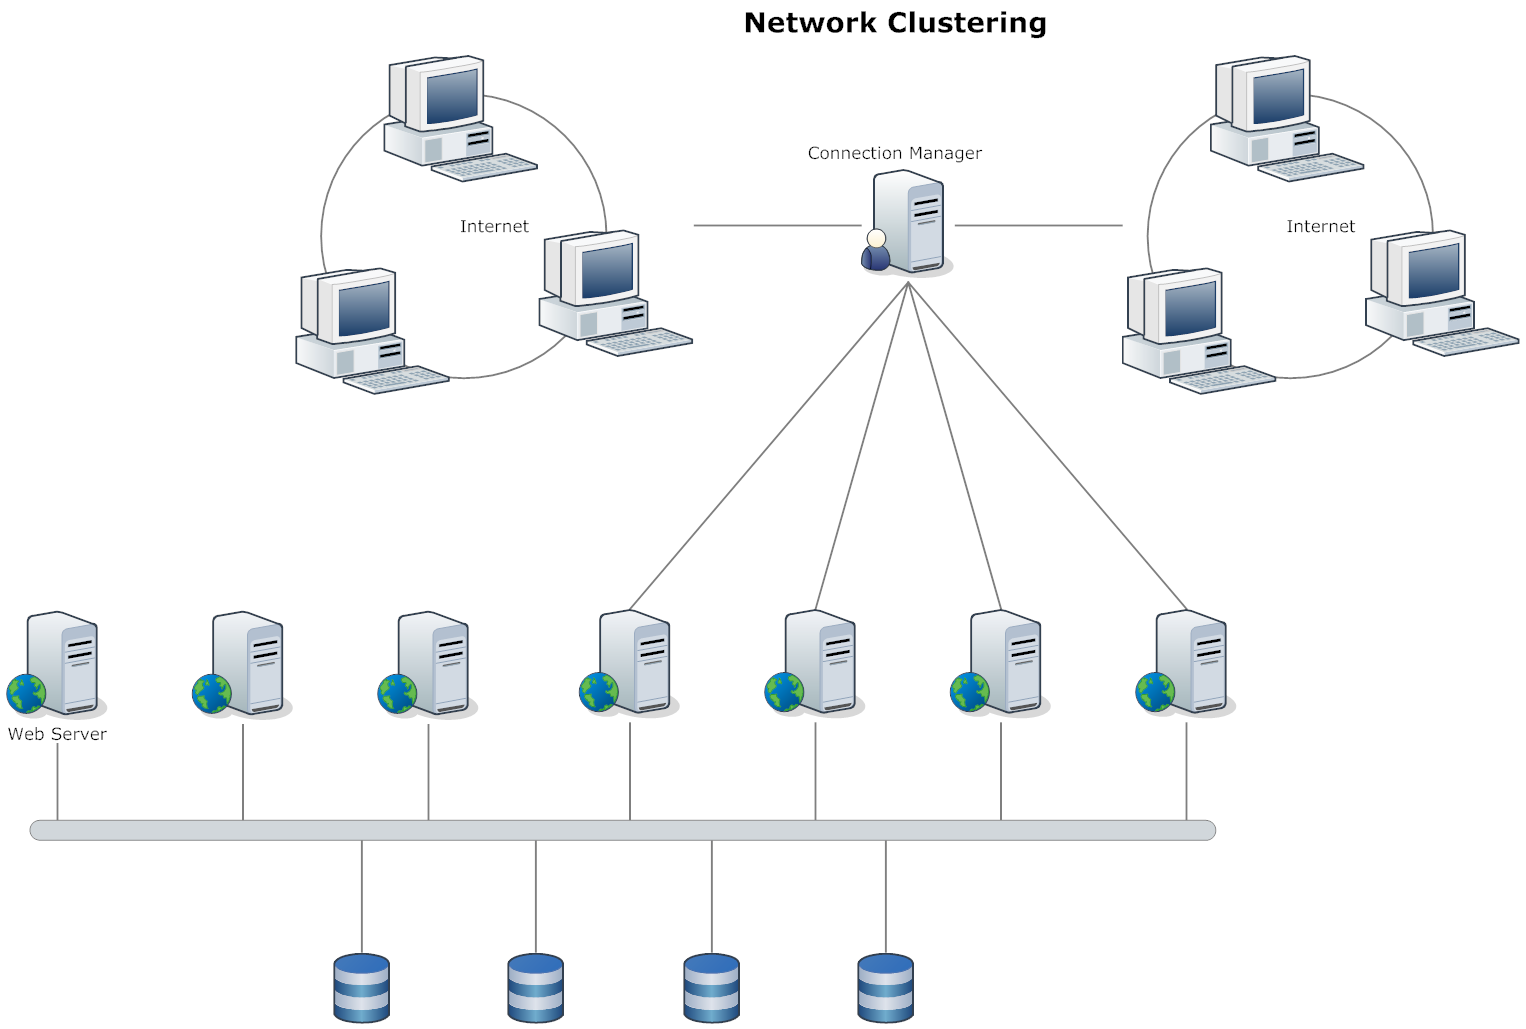 6252a89c214bcc45793f6bbebe7d984f network diagram example clustering network diagrams pinterest home network diagram examples at n-0.co